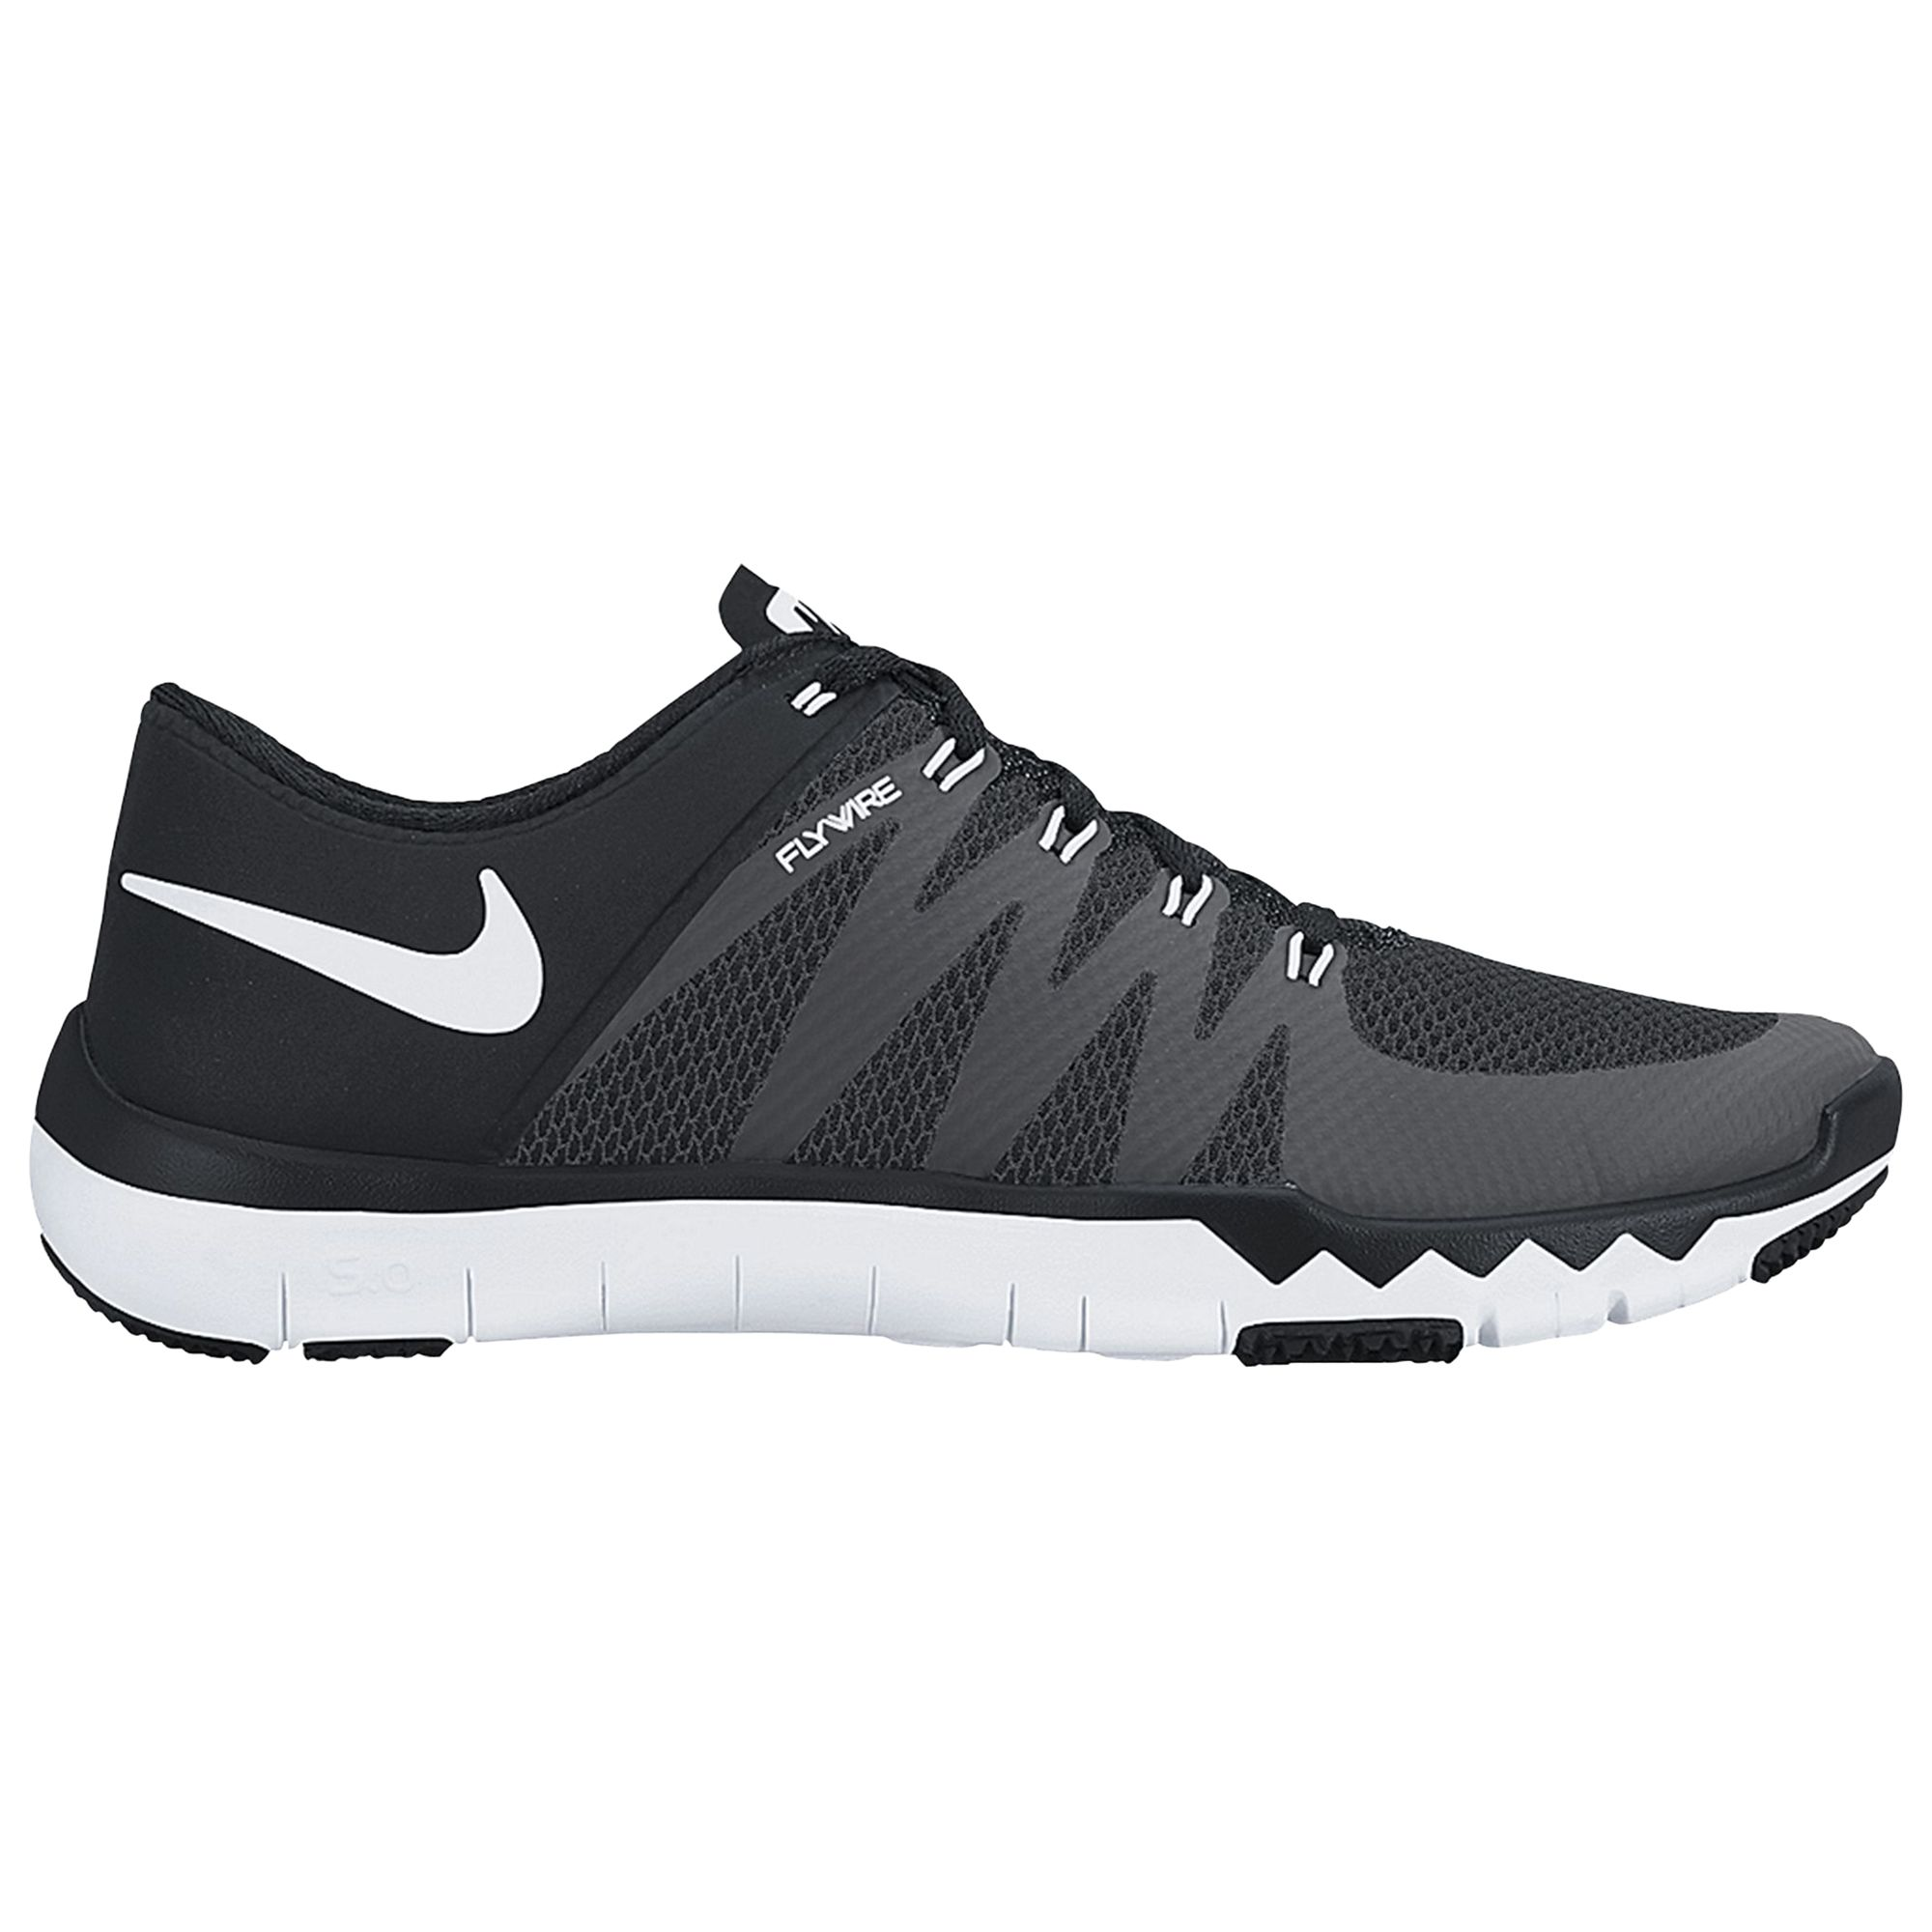 orden Minúsculo cualquier cosa  Nike Free Trainer 5.0 V6 Men's Cross Trainers at John Lewis & Partners